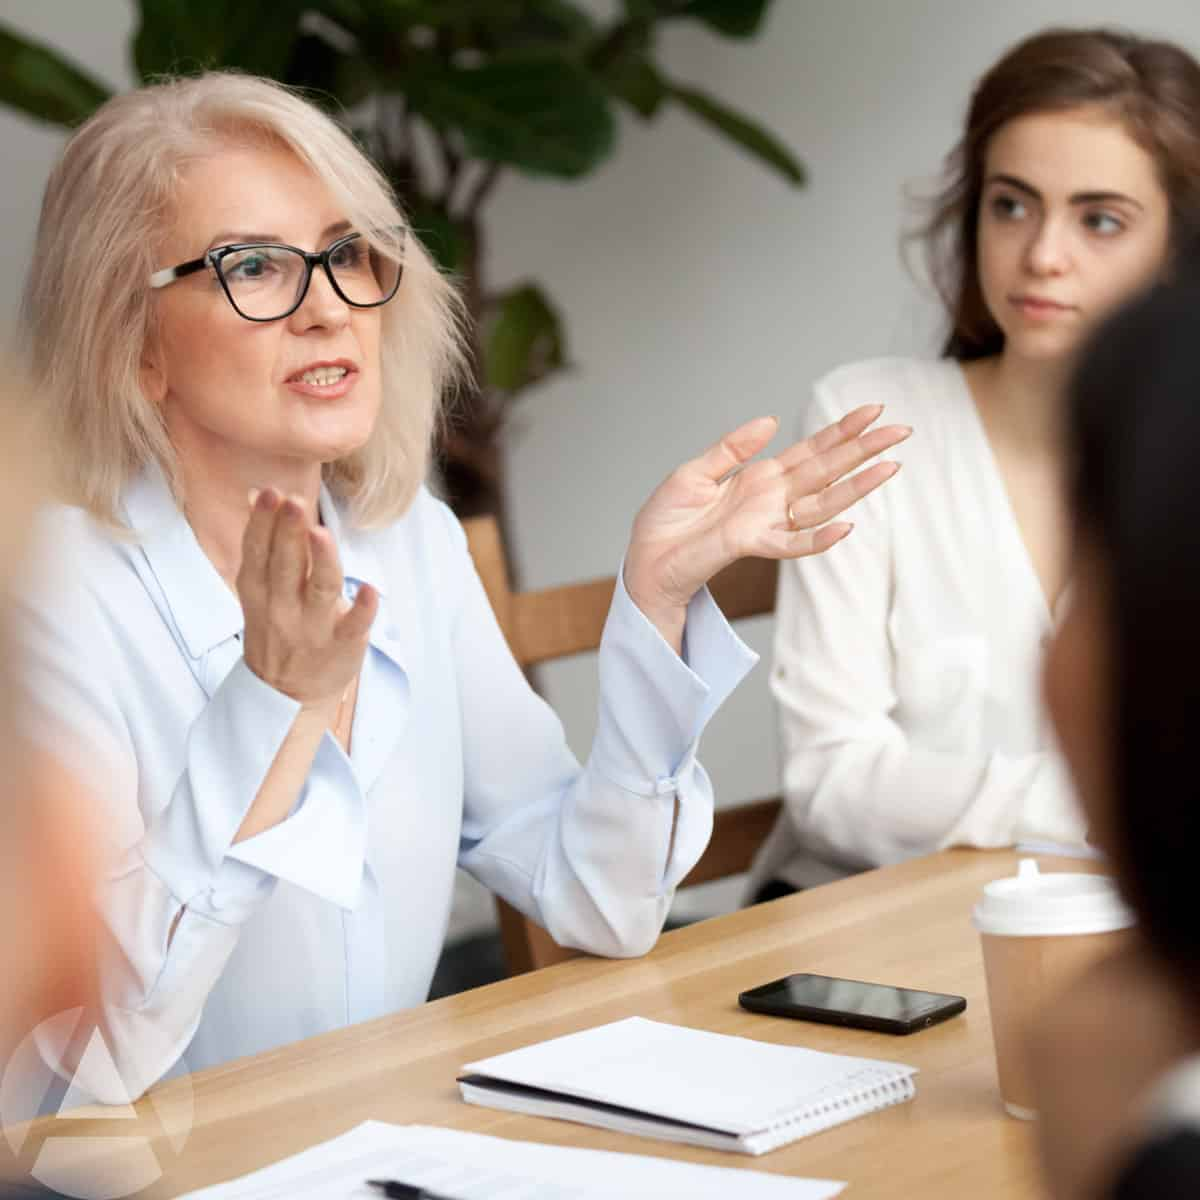 Savvy business woman sitting at a table with other women explaining retirement saving tips for women.